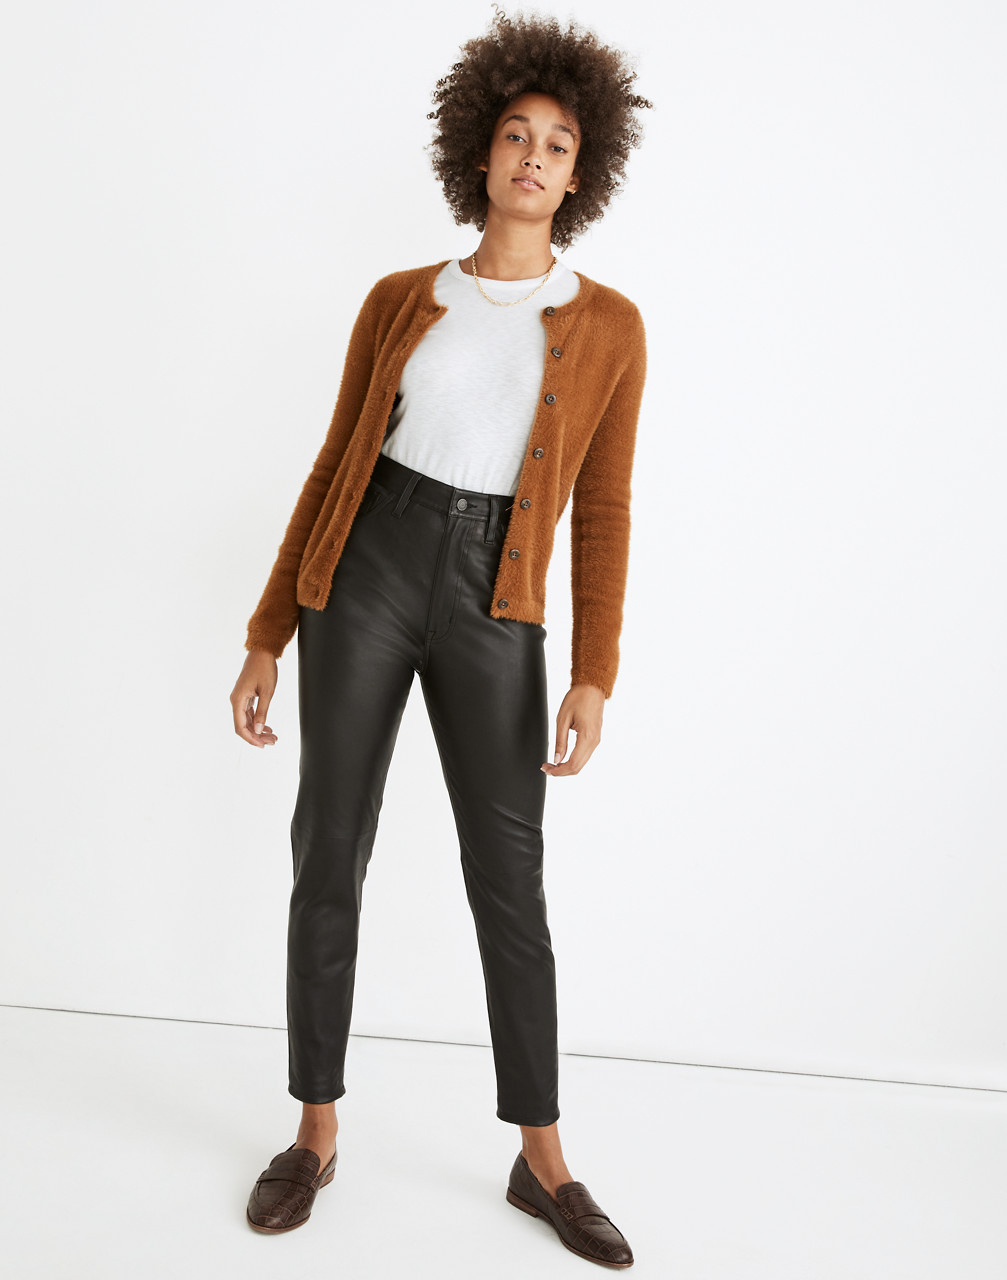 90s Clothing Outfits You Can Buy Now The Perfect Vintage Jean Leather Edition $398.00 AT vintagedancer.com